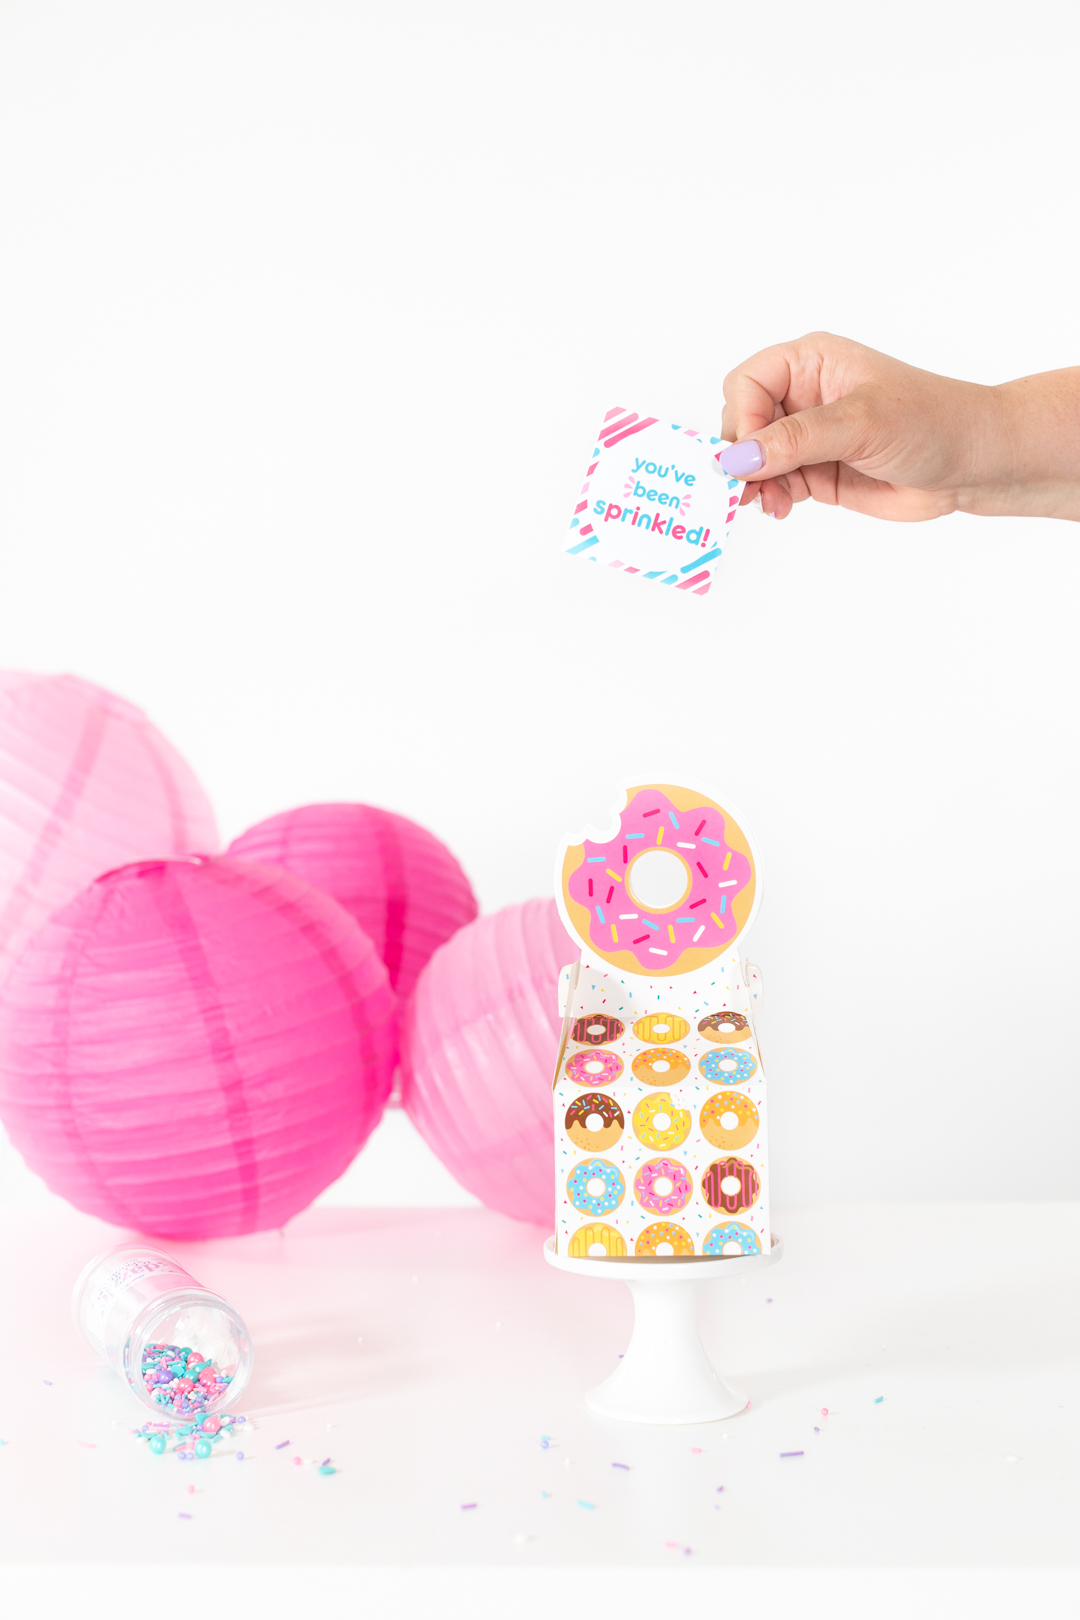 adding cute sprinkle gift tag to donut gift box